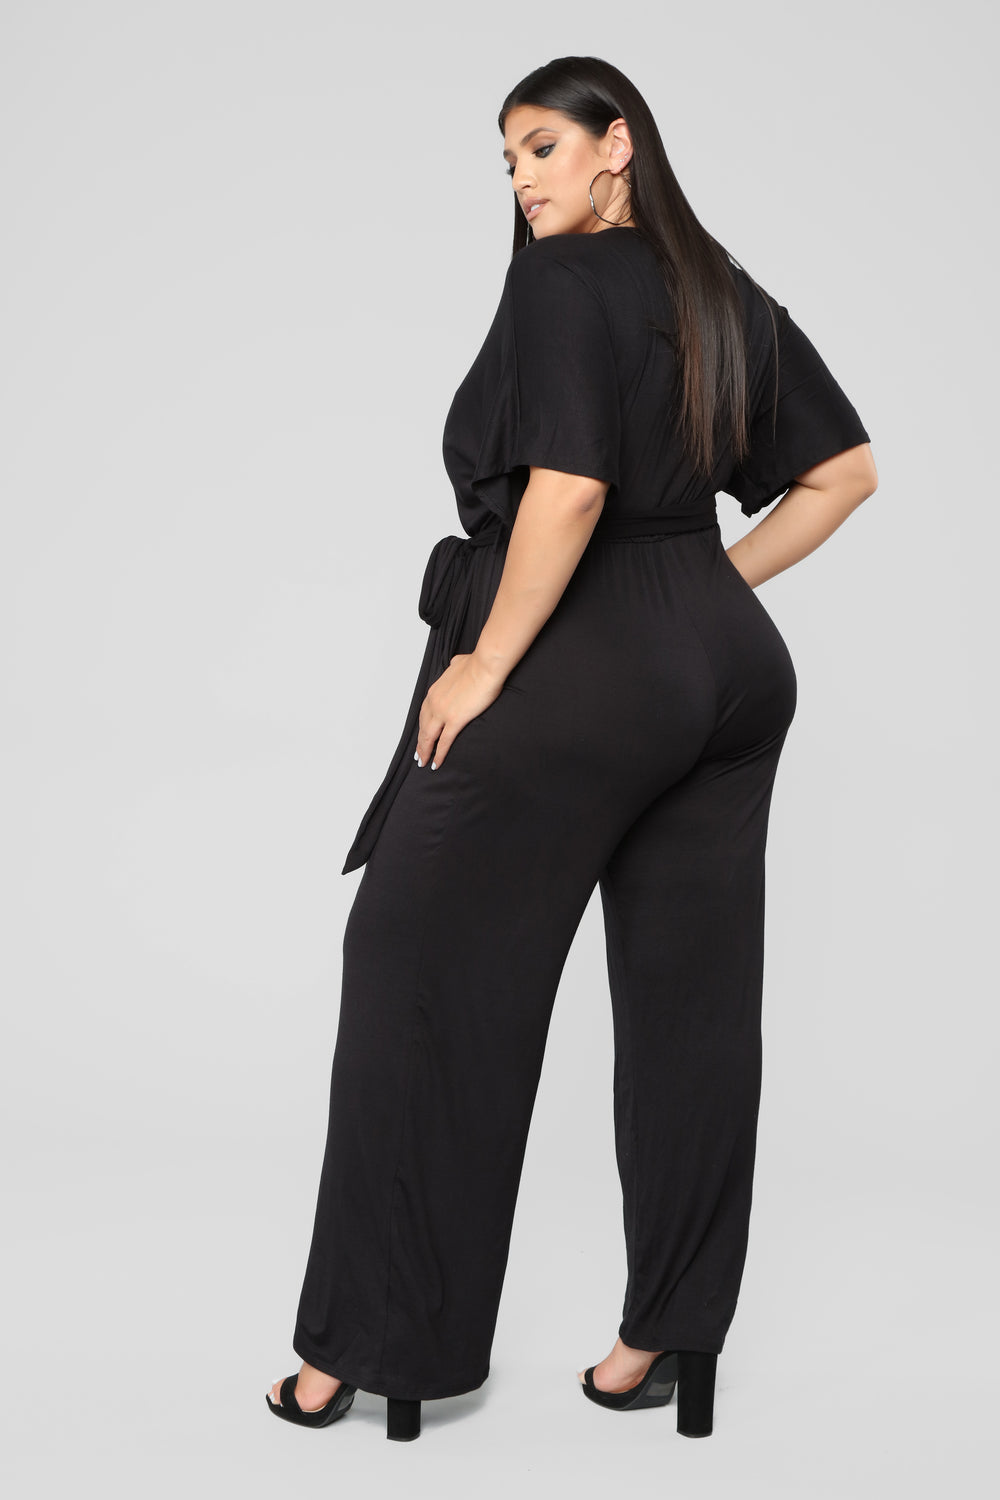 Knot Even Thinking About You Jumpsuit - Black